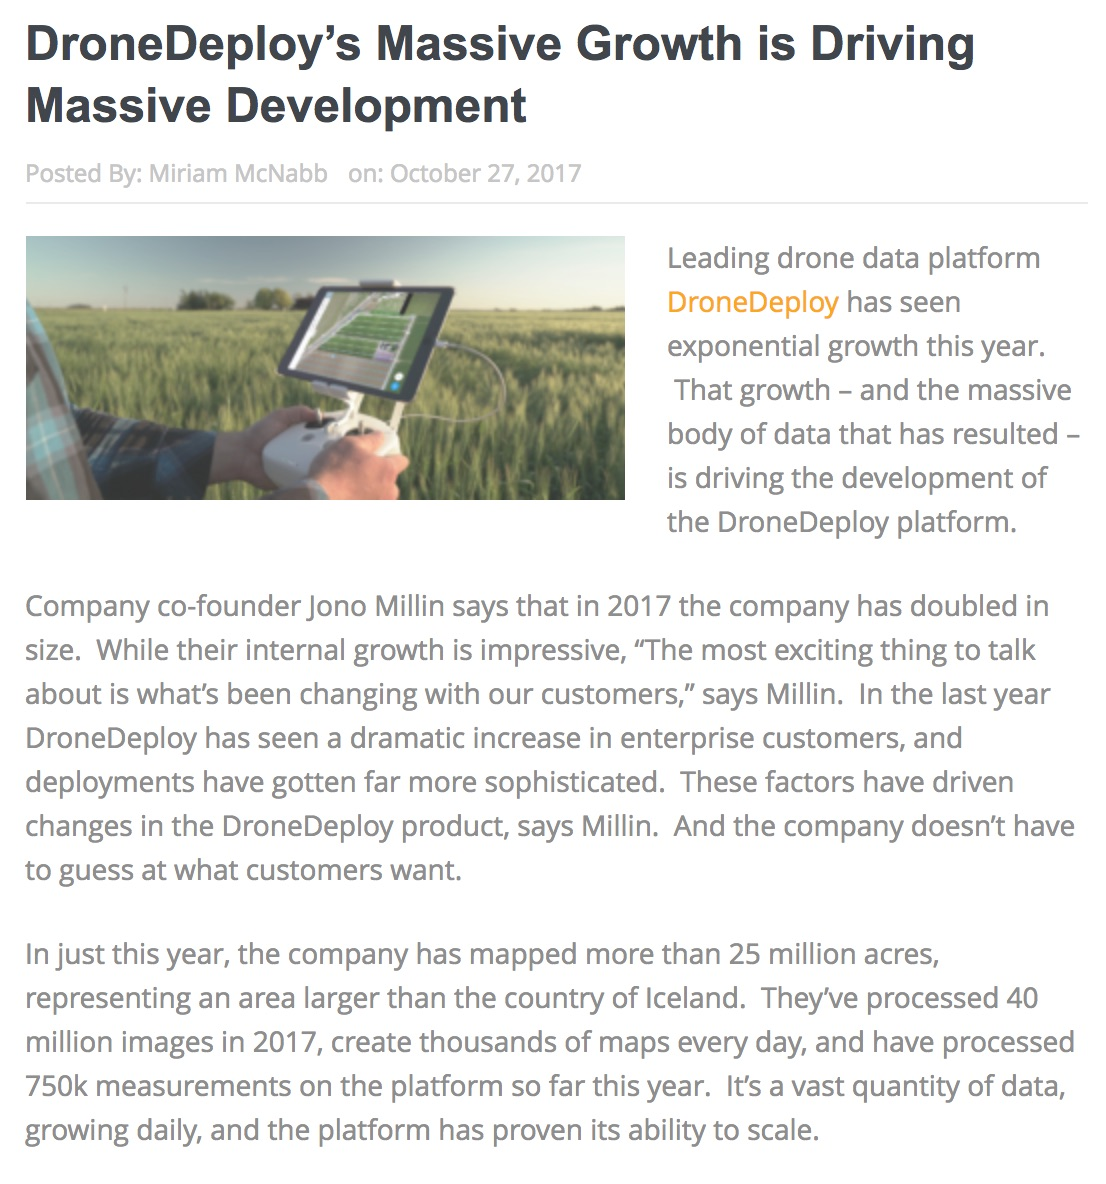 """The DroneDeploy platform includes the largest App Market in the industry, an increasing number of APIs to allow more points of integration, and a Private App option, which allows enterprise customers to customize a solution. Private apps allow for features like custom flight settings, FAA checklist, customer reporting and workflow automation.  Ian Smith, Head of Business Development for DroneDeploy's App Market, says that DroneDeploy is fostering an ecosystem of innovation. They currently offer the world's largest collection of apps – over 60, offering solutions for 9 industry verticals. Over 1 million app runs demonstrate the market's adoption, as does the over 100,000 app installs. """"People are finding these apps,"""" says Smith, """"and using them to solve problems.""""  """"More apps, more value, new APIs – we're opening up our platform for more integration points for an even better user experience,"""" says Smith. """"We're opening the platform to the enterprise."""""""